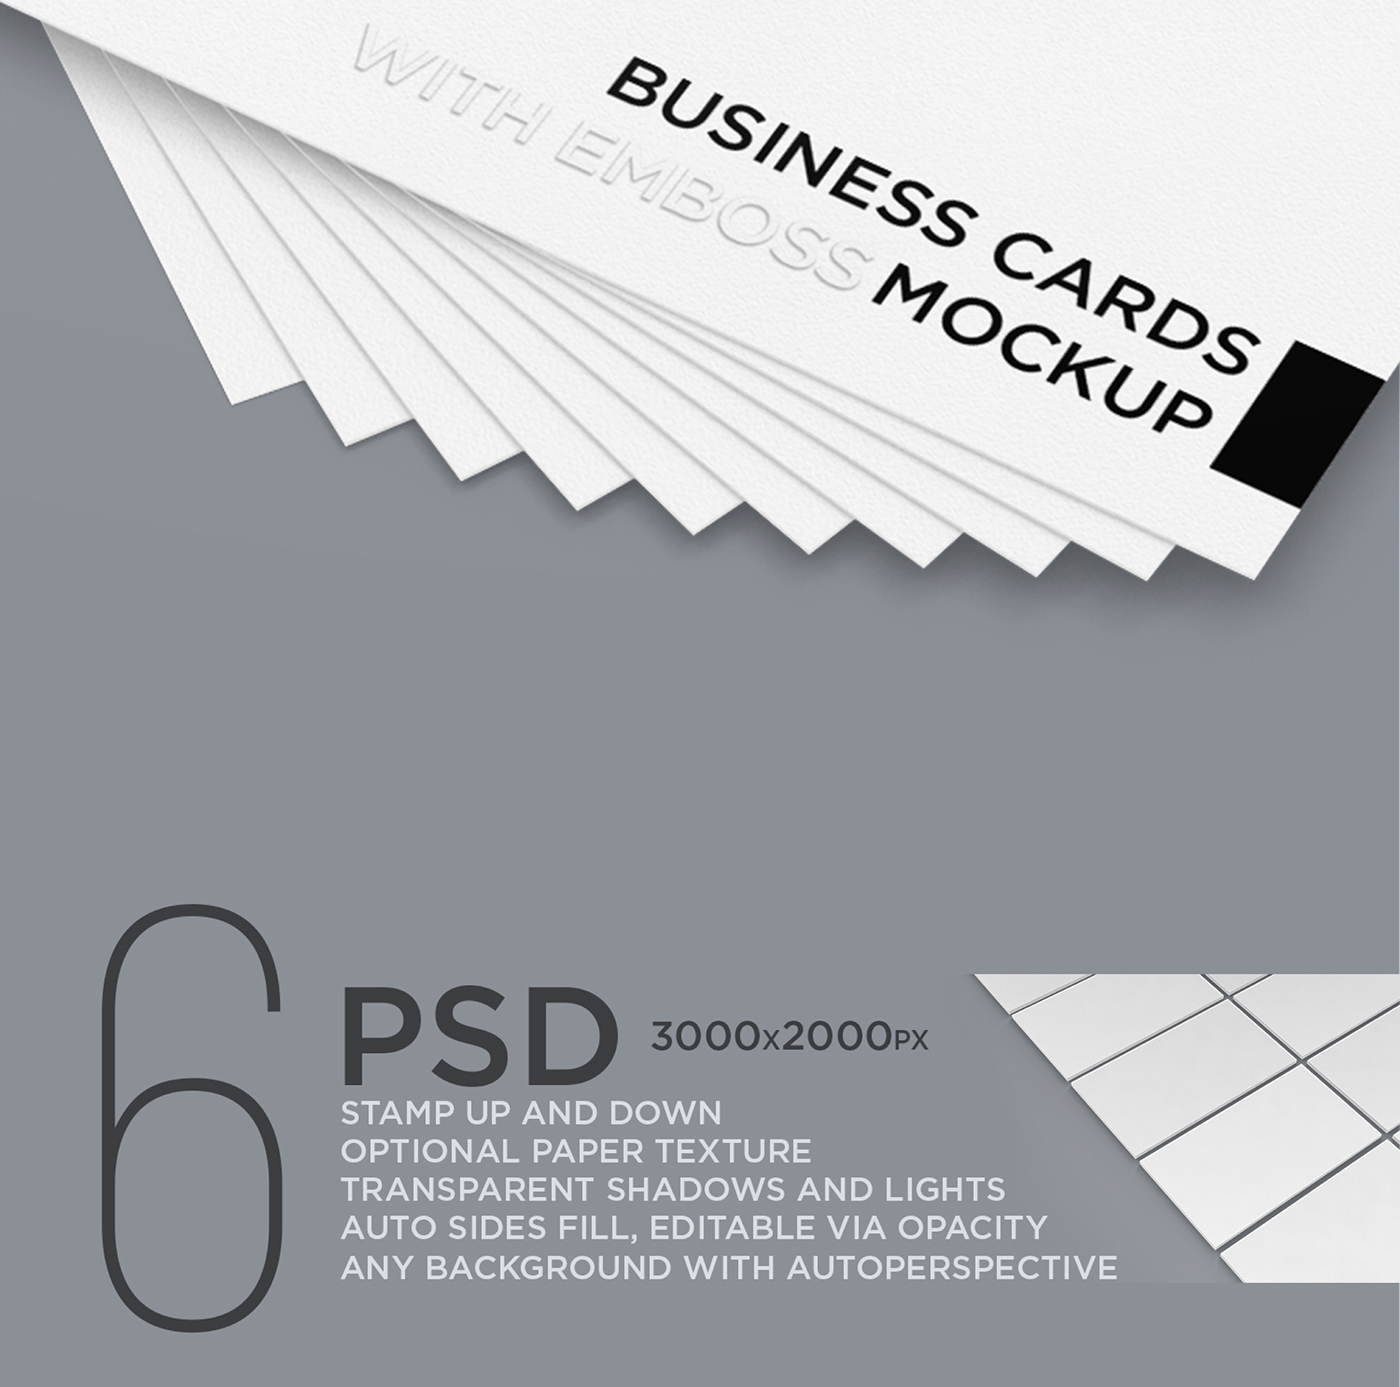 Business Cards with Emboss Mockup on Behance